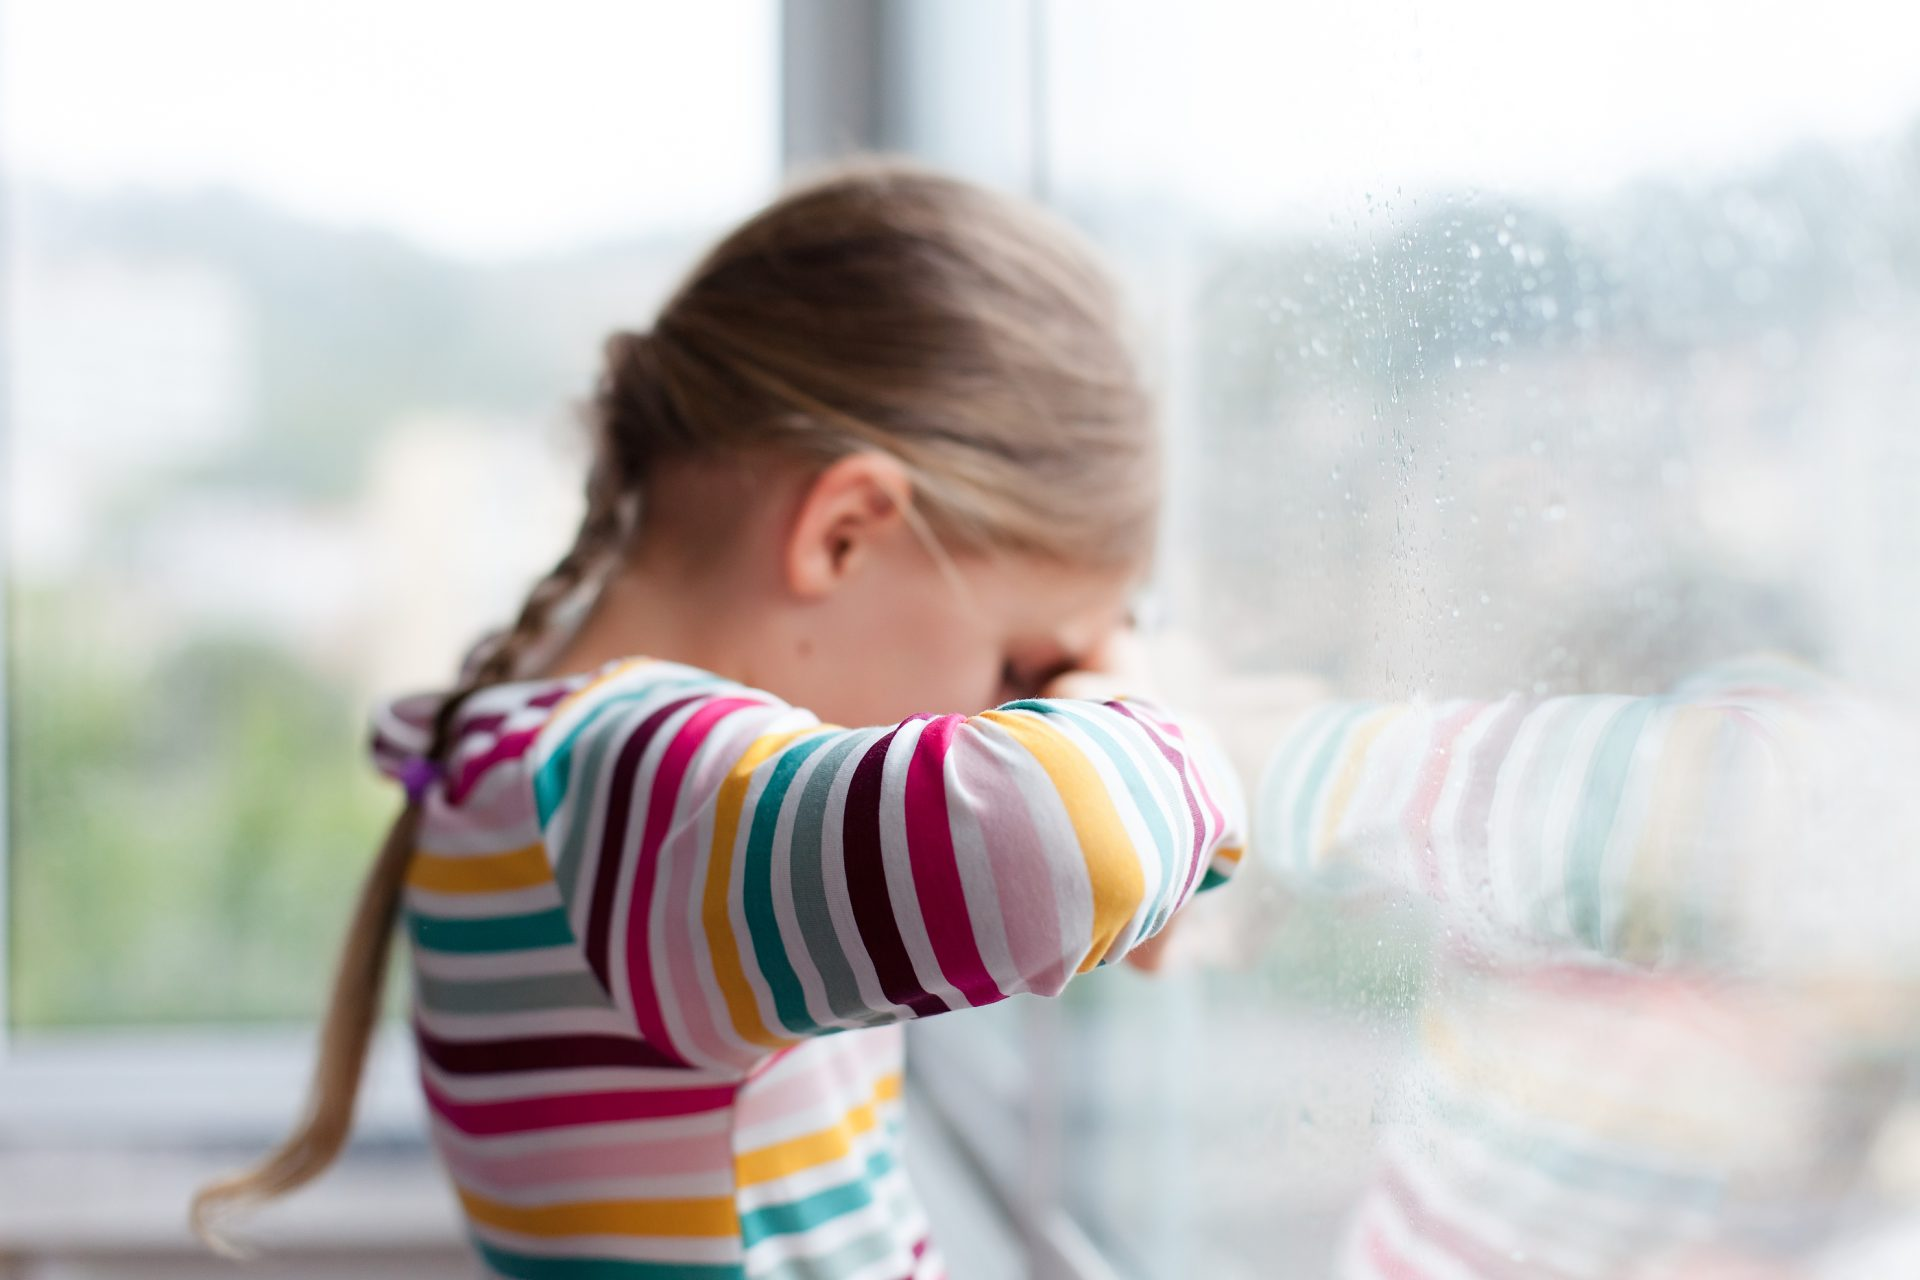 Children's Mental Health: What You Need to Know